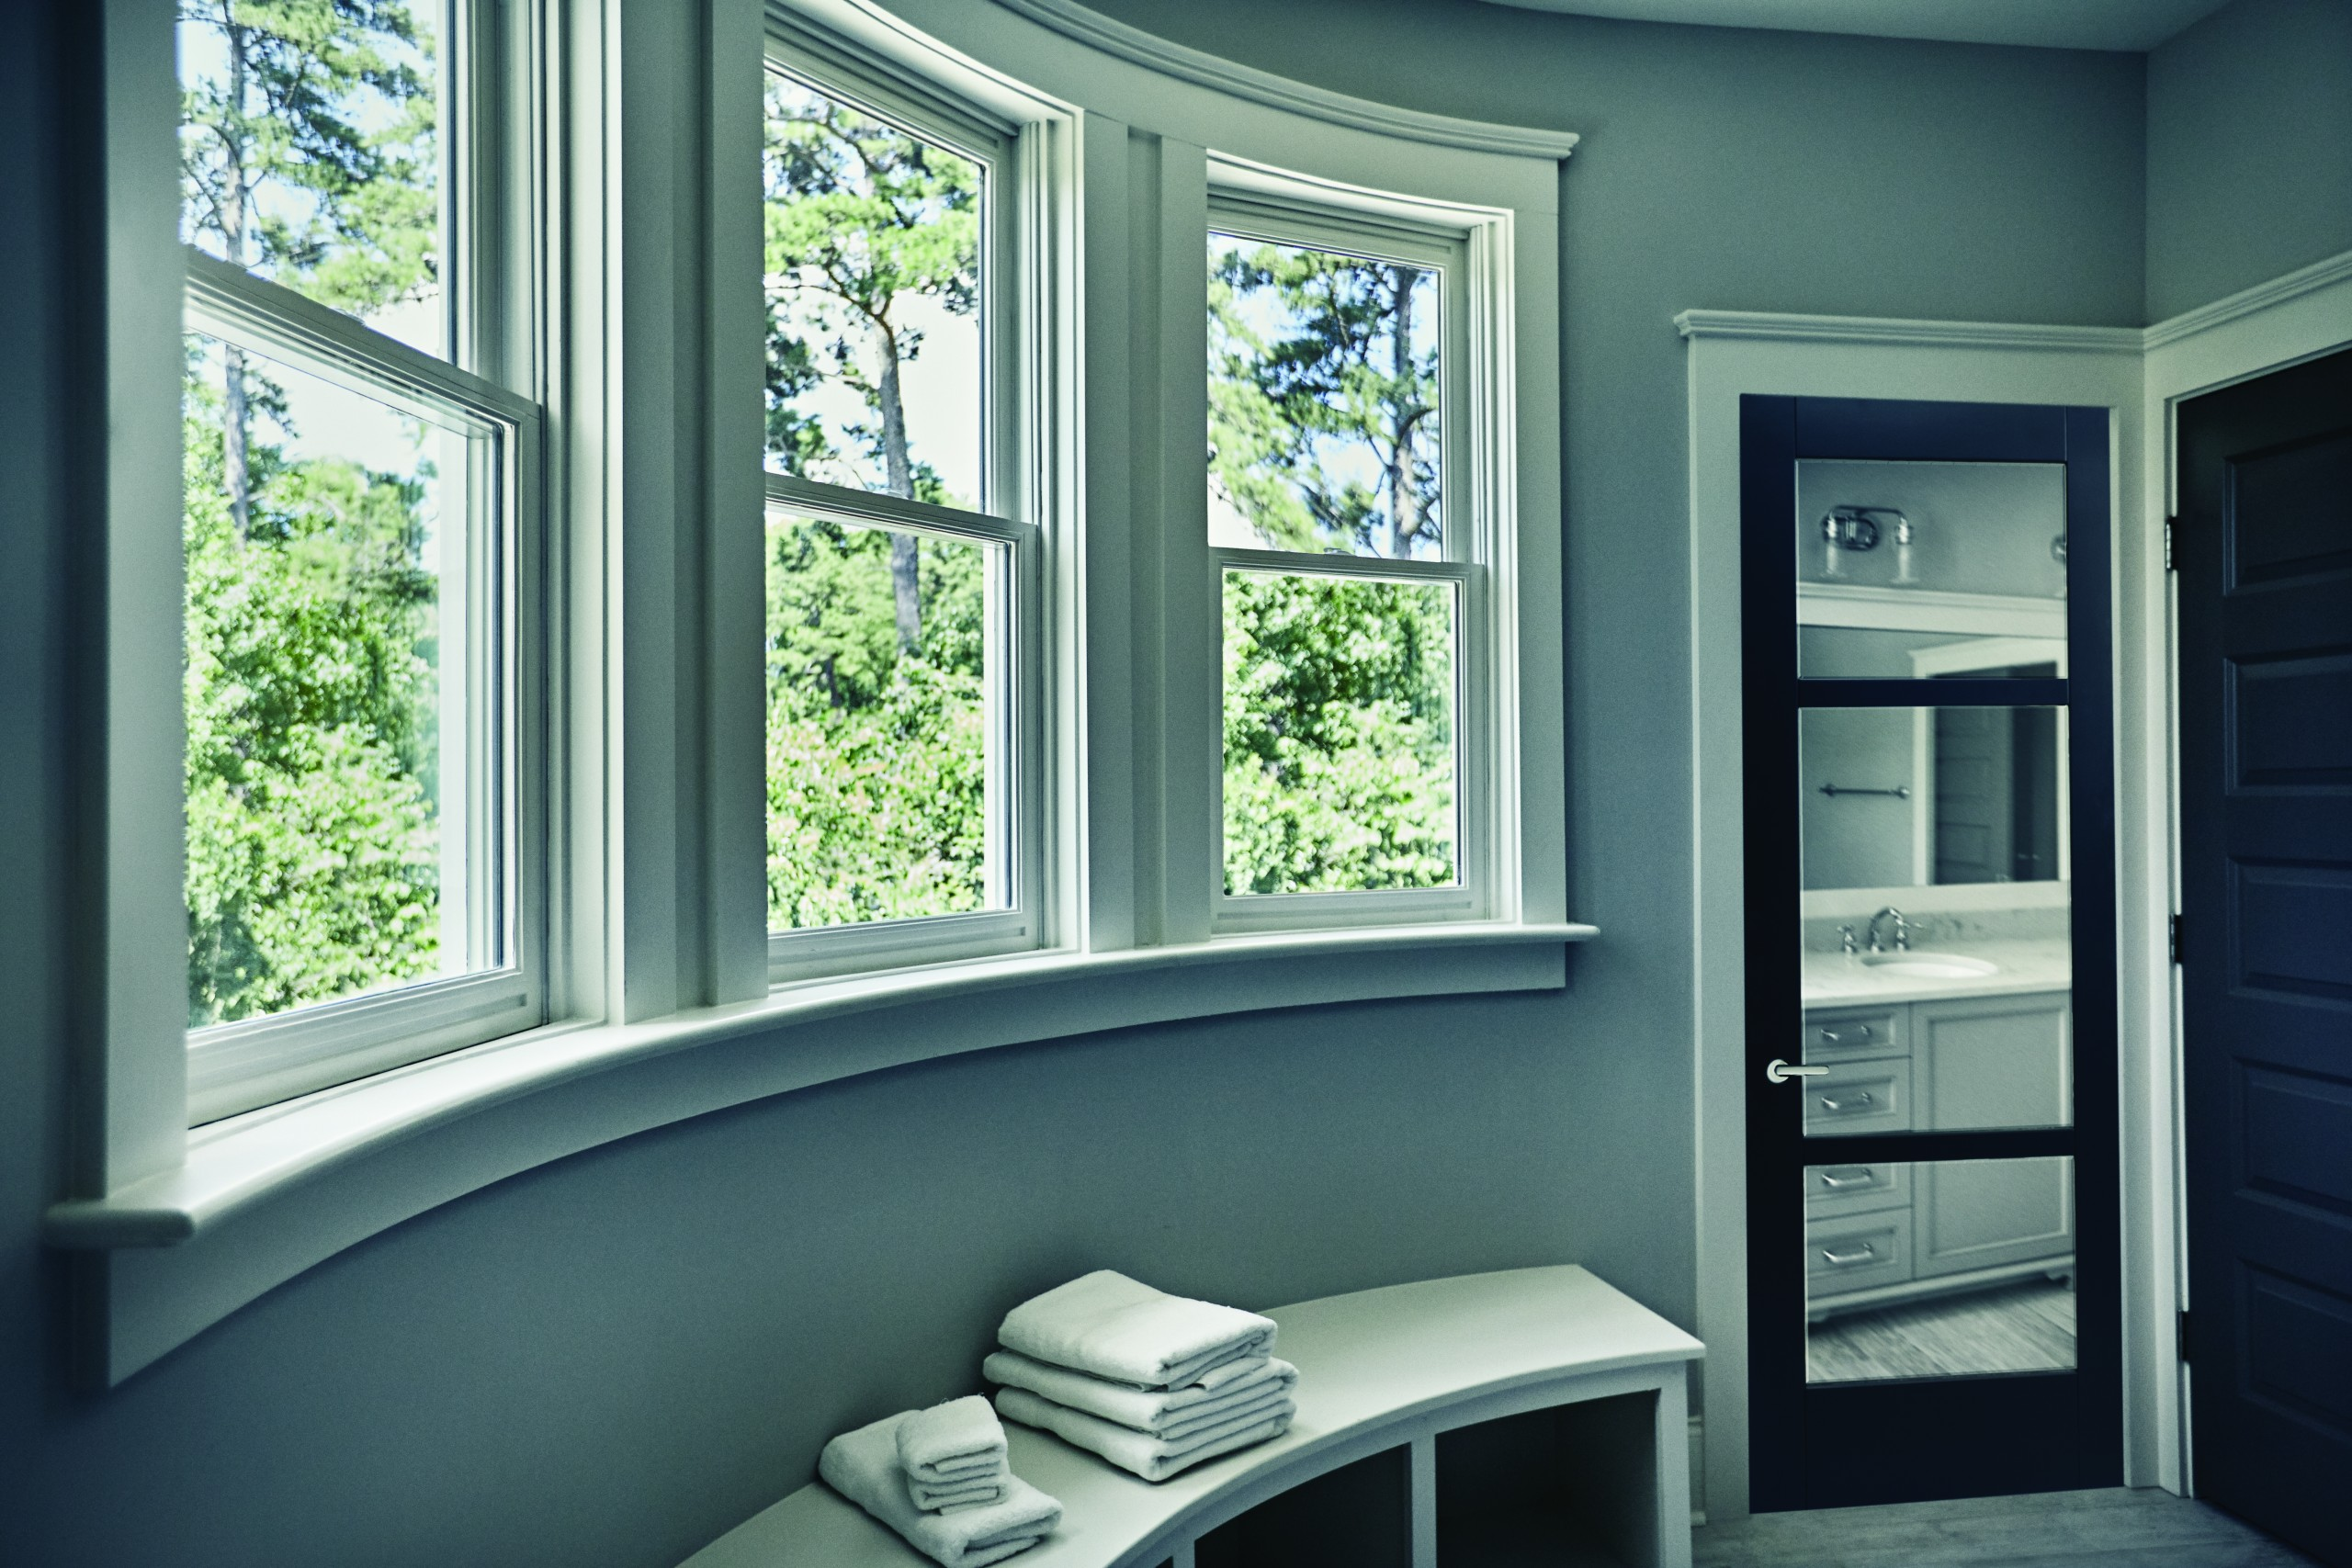 Interested in installing new windows or doors?